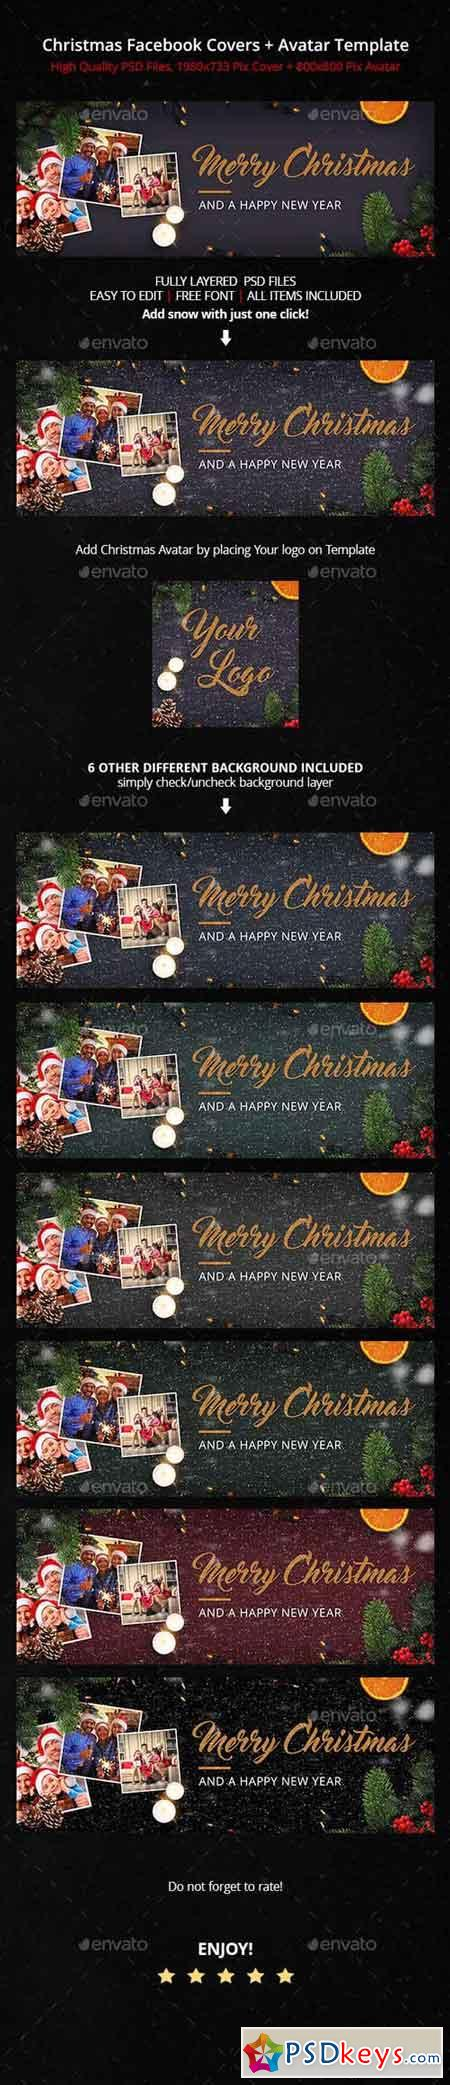 Family Christmas Facebook Cover 19157065